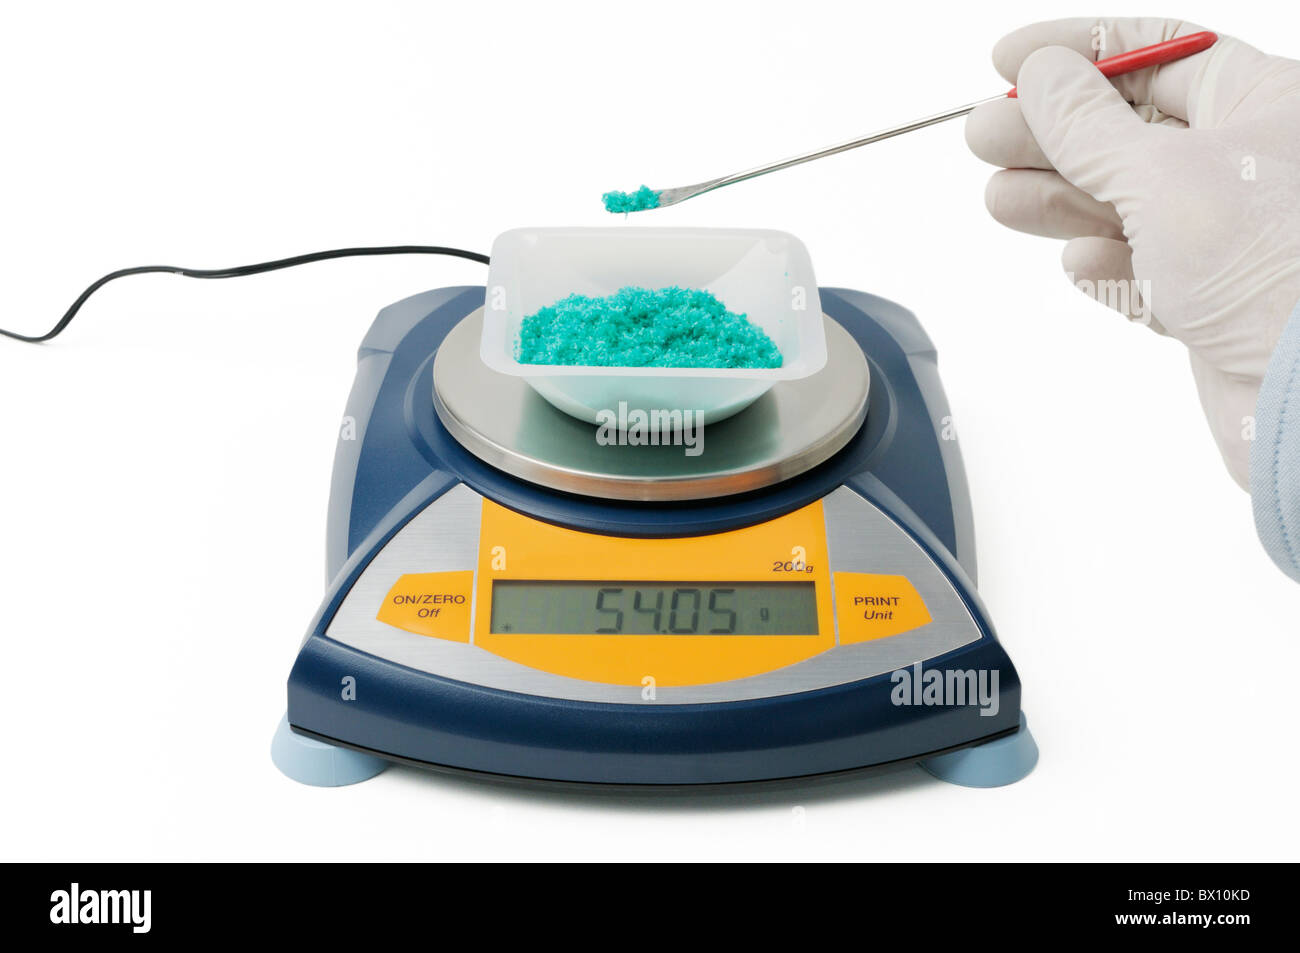 Measuring the mass of a chemical (Cupric Chloride dihydrate crystals) with electronic balance - Stock Image